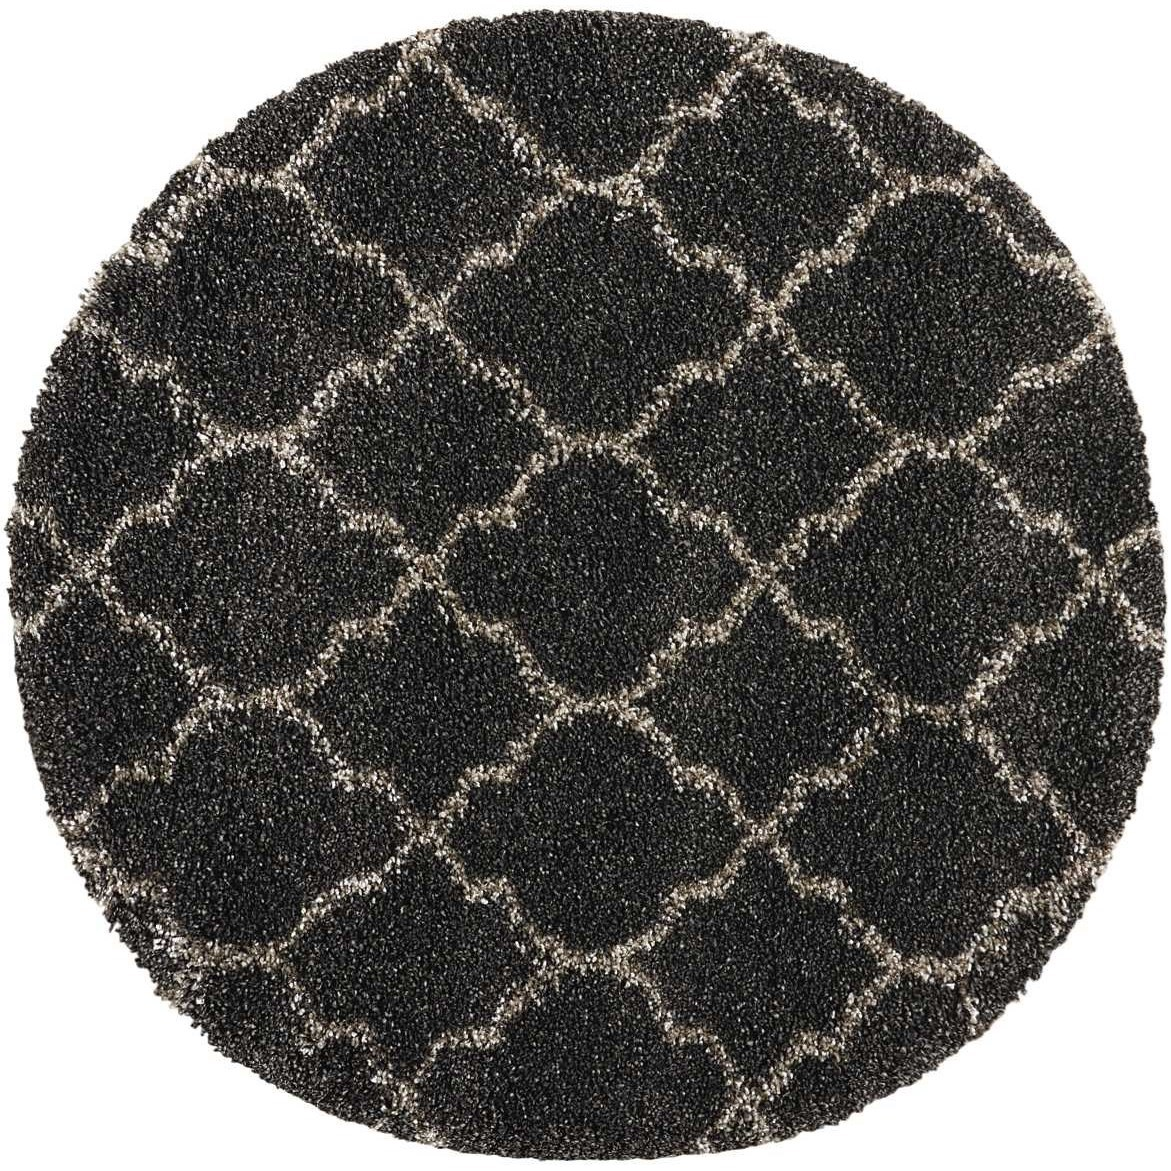 Amore Amore AMOR2 Black 4' Round Area Rug by Nourison at Home Collections Furniture